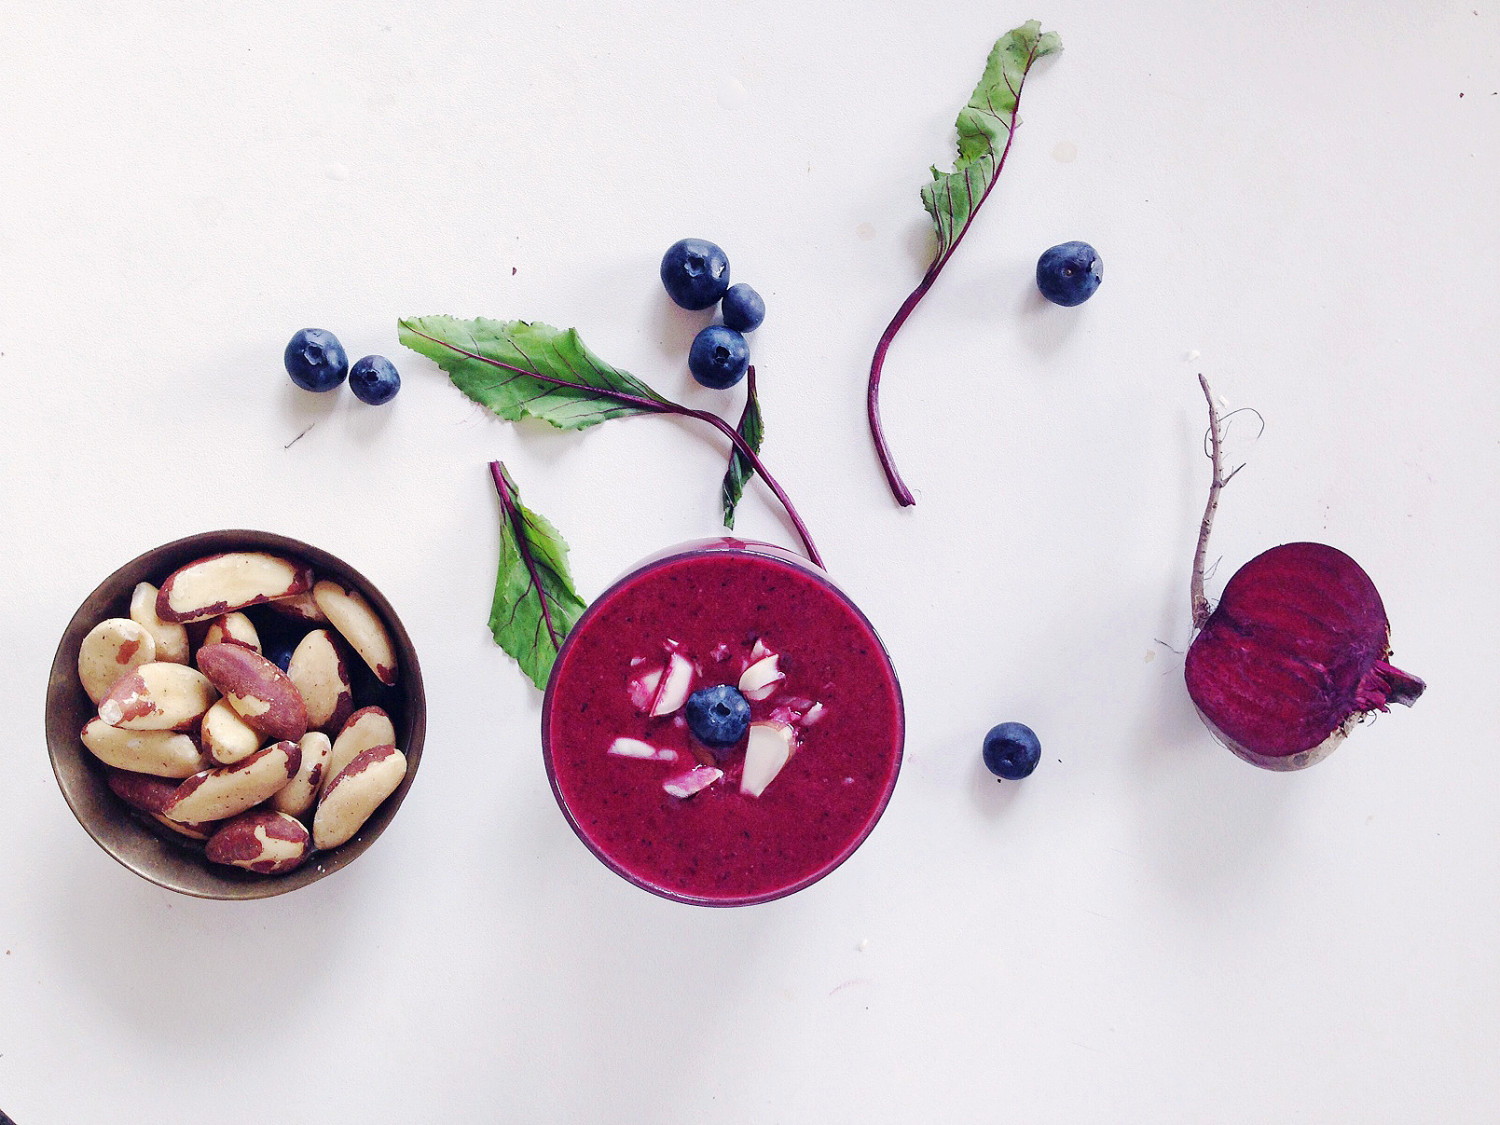 Beetroot, Blueberry and Brazil Nut Smoothie